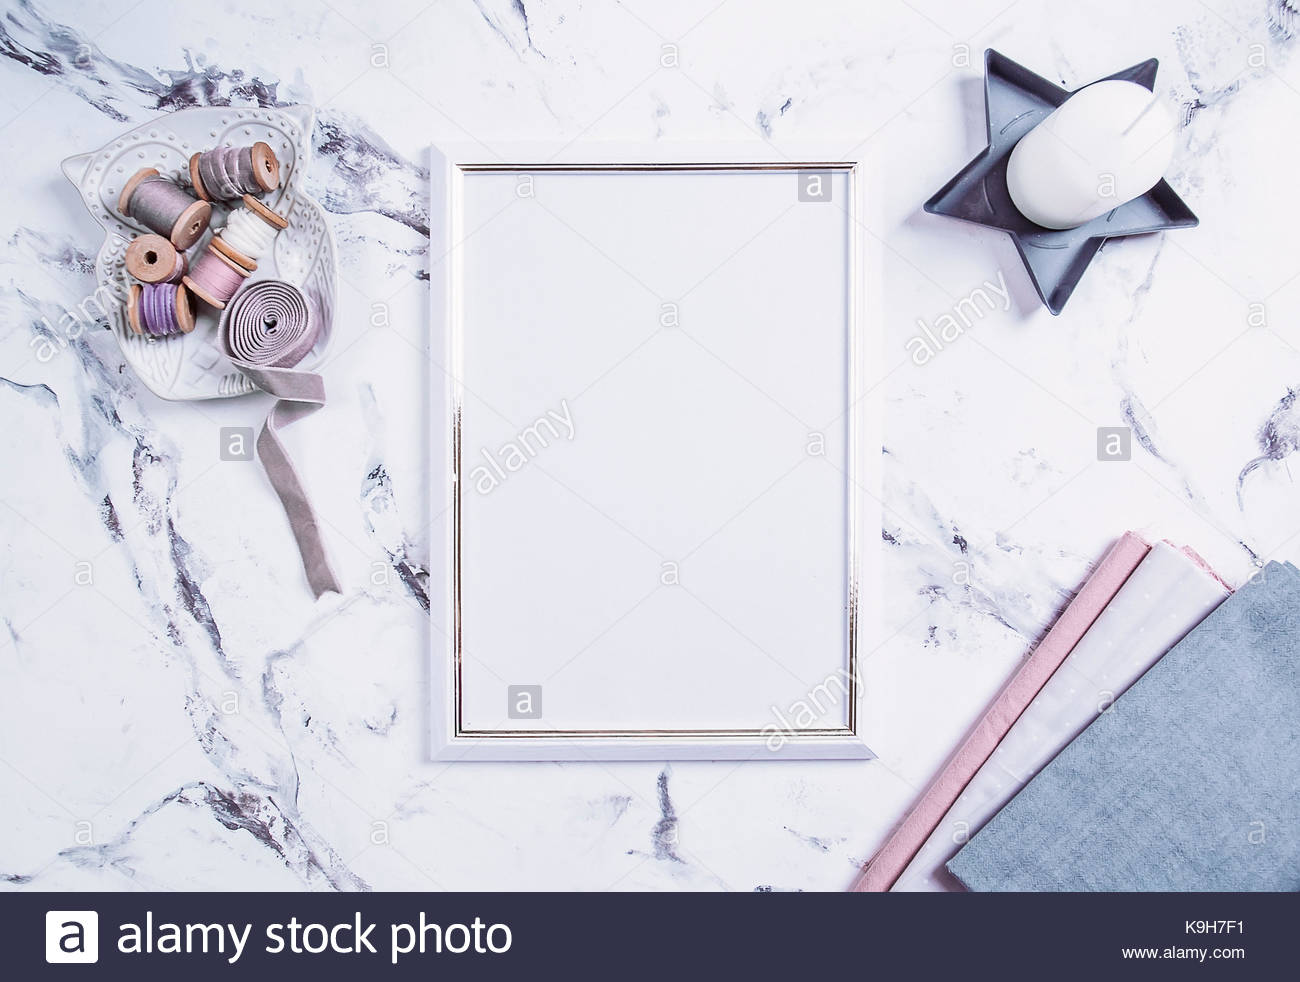 hight resolution of blank photo frame and spool of threads buttons a stack of fabrics over marble table background mockup flat lay top view